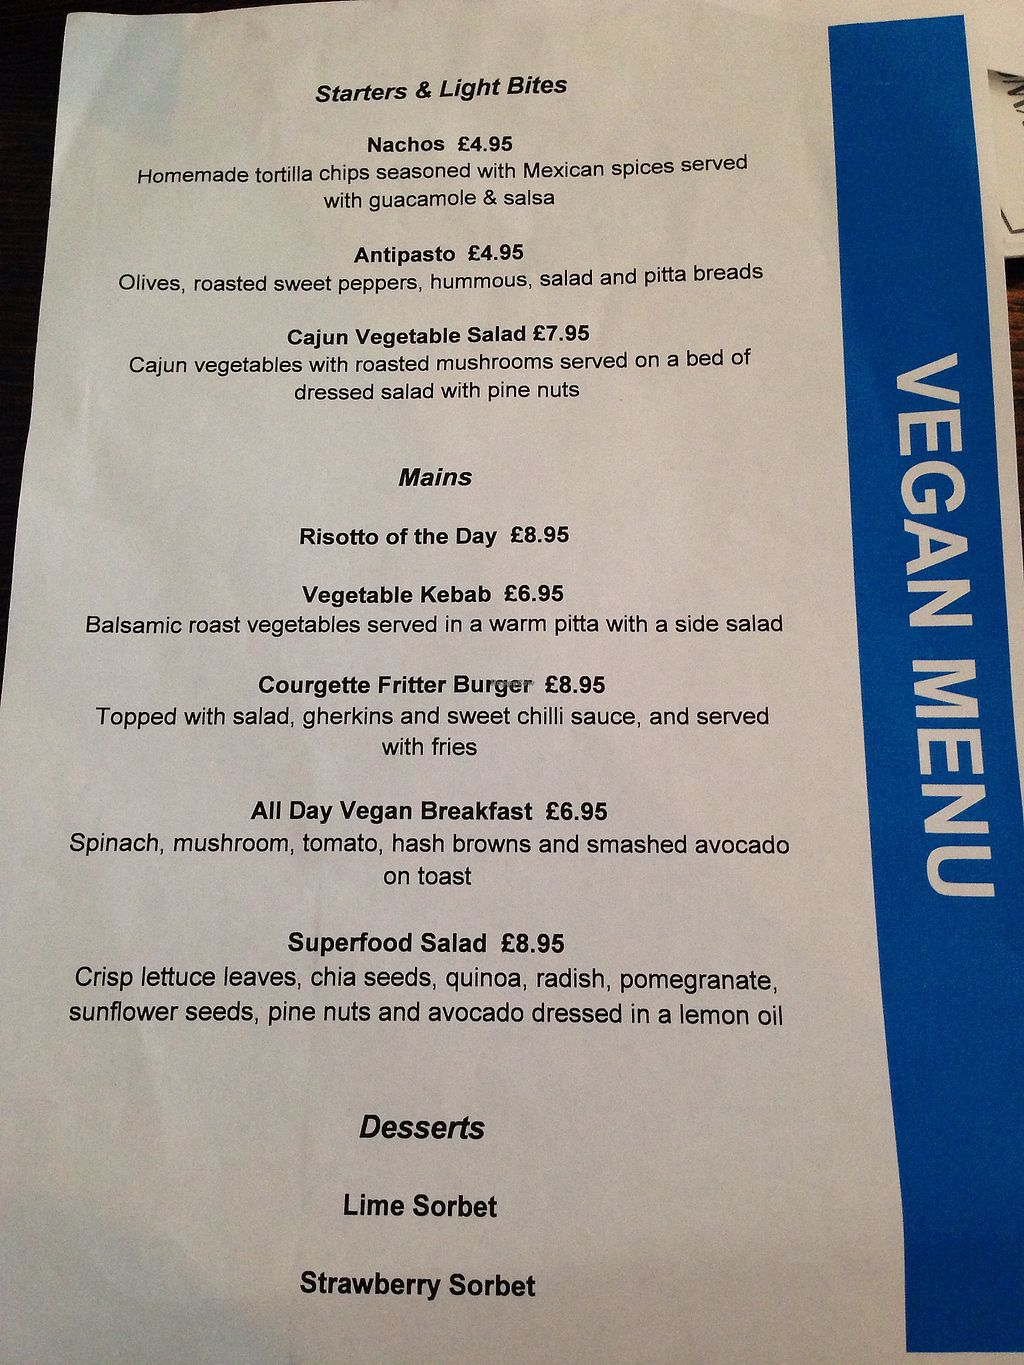 """Photo of Maxwells Cafe Bar  by <a href=""""/members/profile/ameliabysea"""">ameliabysea</a> <br/>Vegan menu on Friday 21st July 2017. There's also passionfruit and lemon sorbet which have been added since the menu was printed! <br/> July 21, 2017  - <a href='/contact/abuse/image/75439/282965'>Report</a>"""